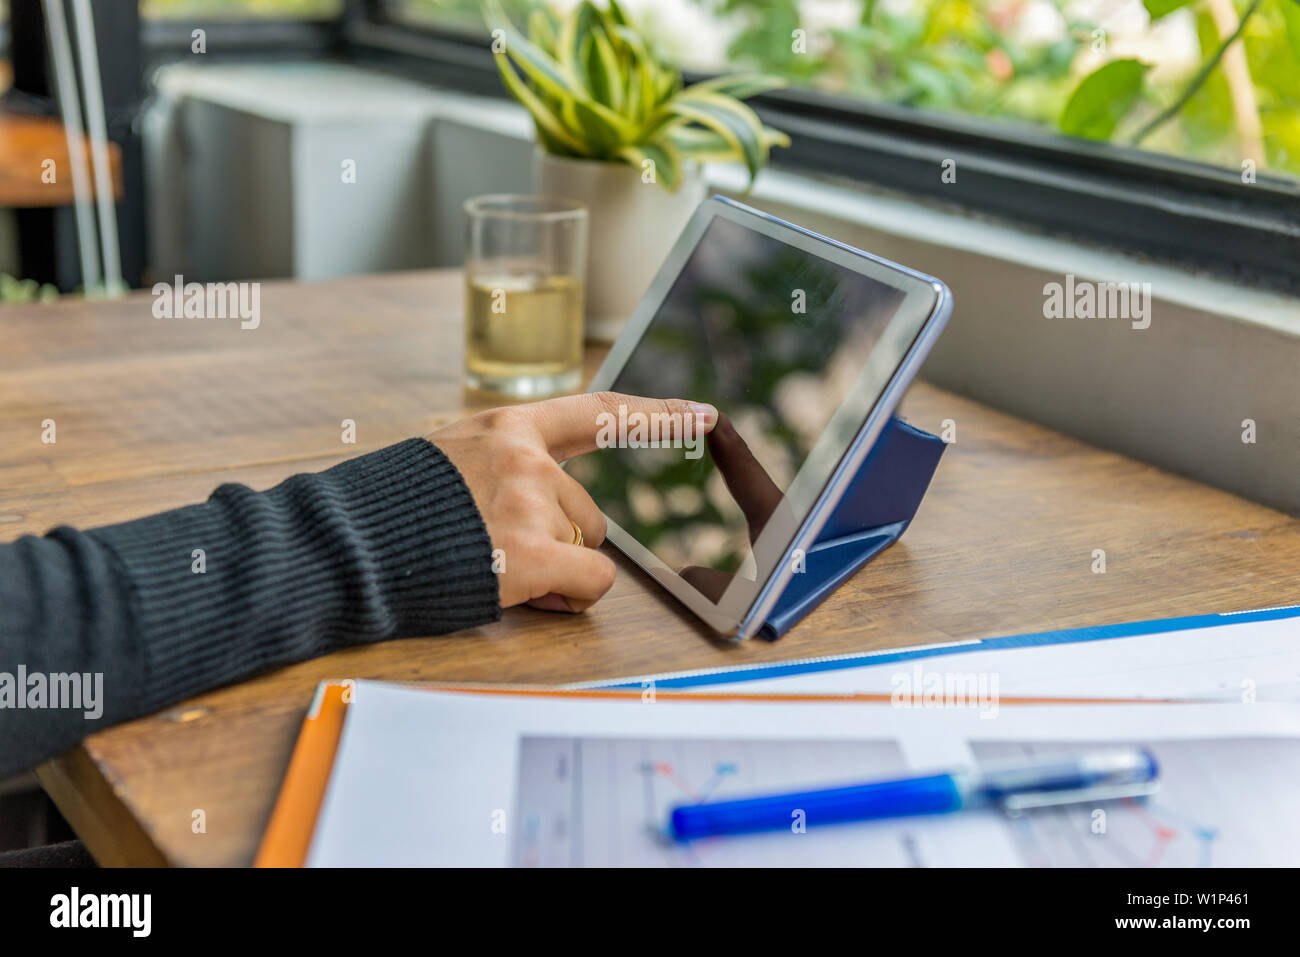 Closeup of index finger tapping tablet screen on wooden table - Stock Image